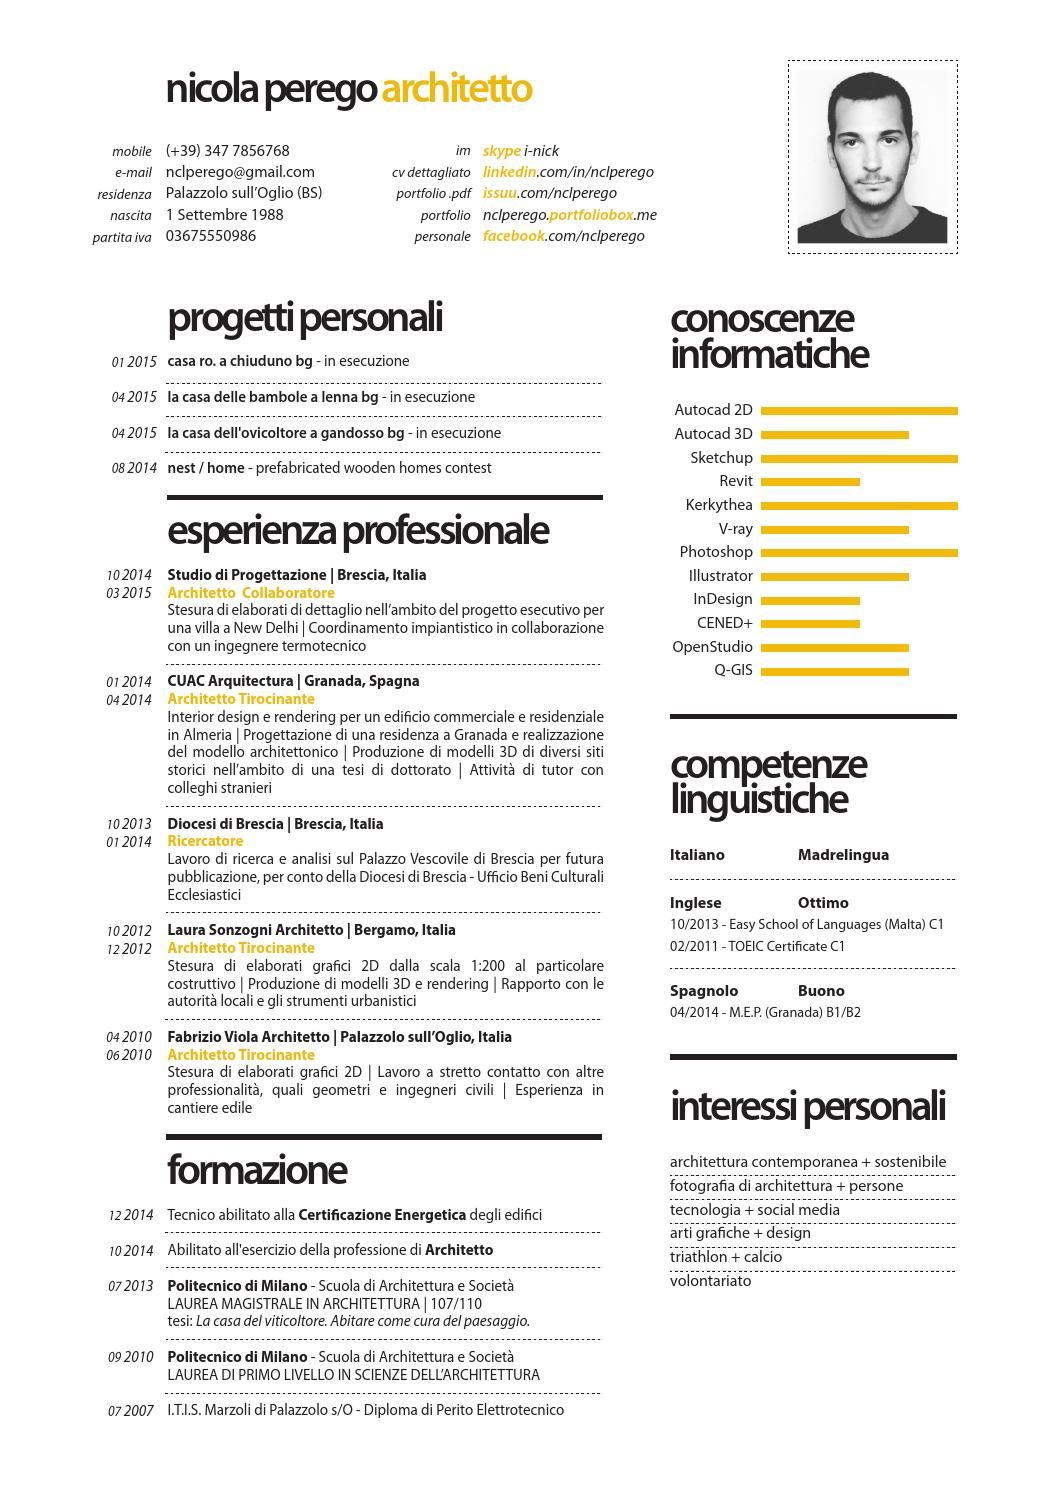 nicola perego architetto | Curriculum, Creative cv and Cv ideas